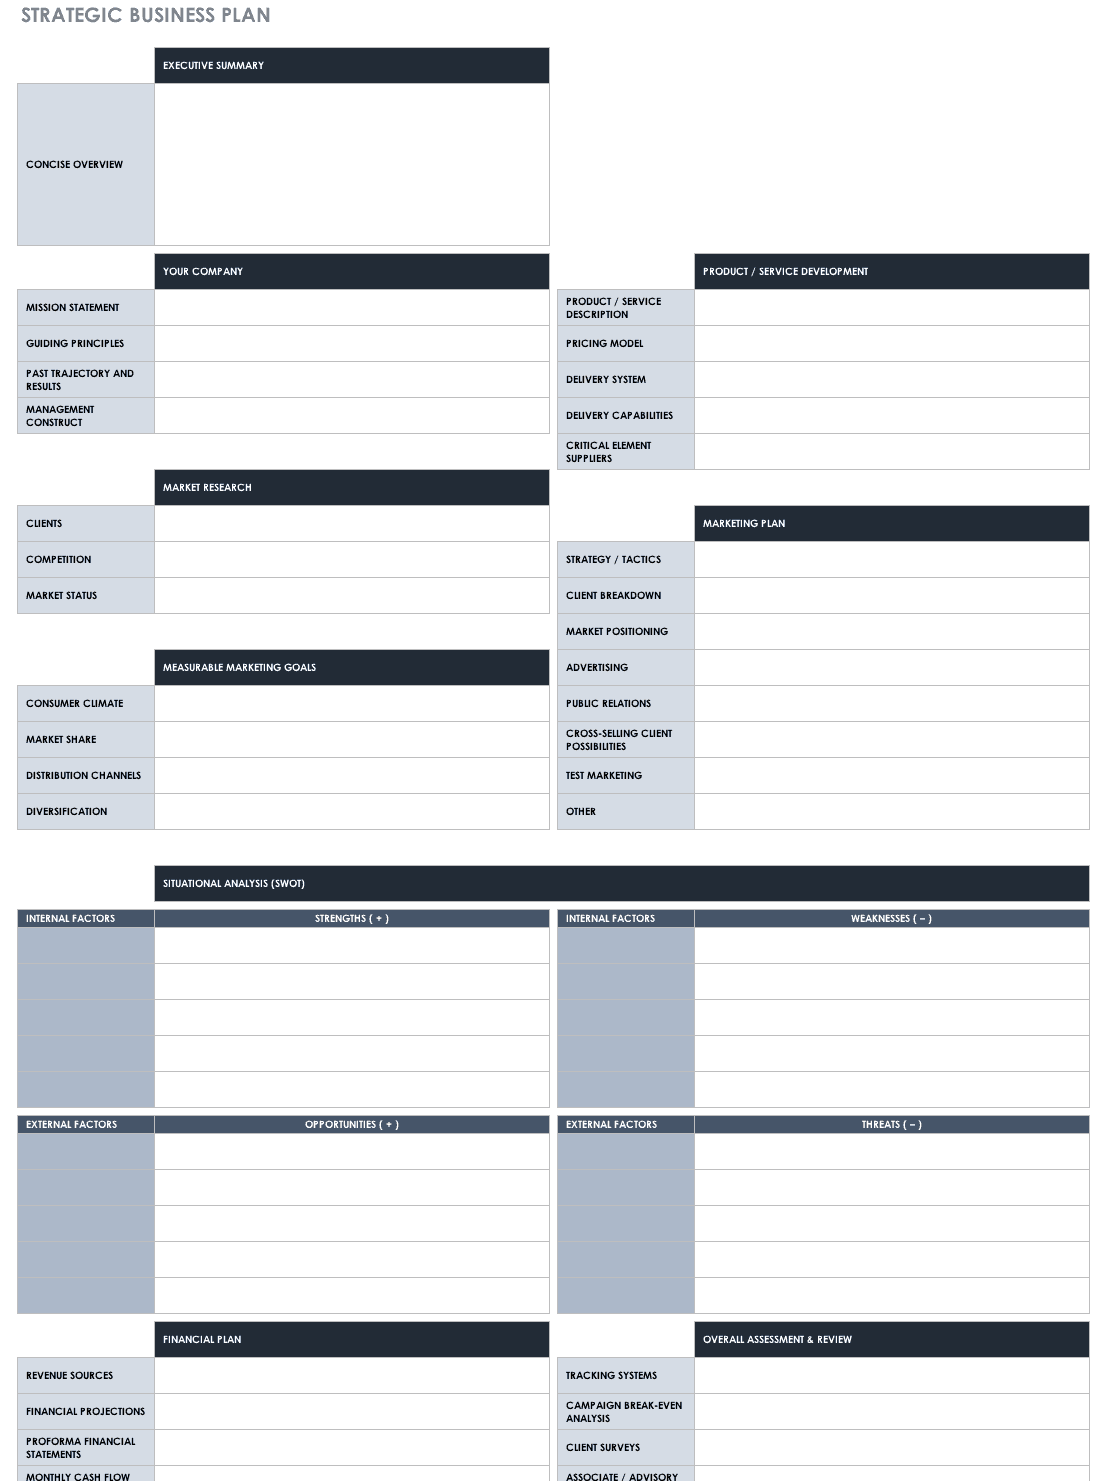 Free strategic planning templates smartsheet strategic business plan template friedricerecipe